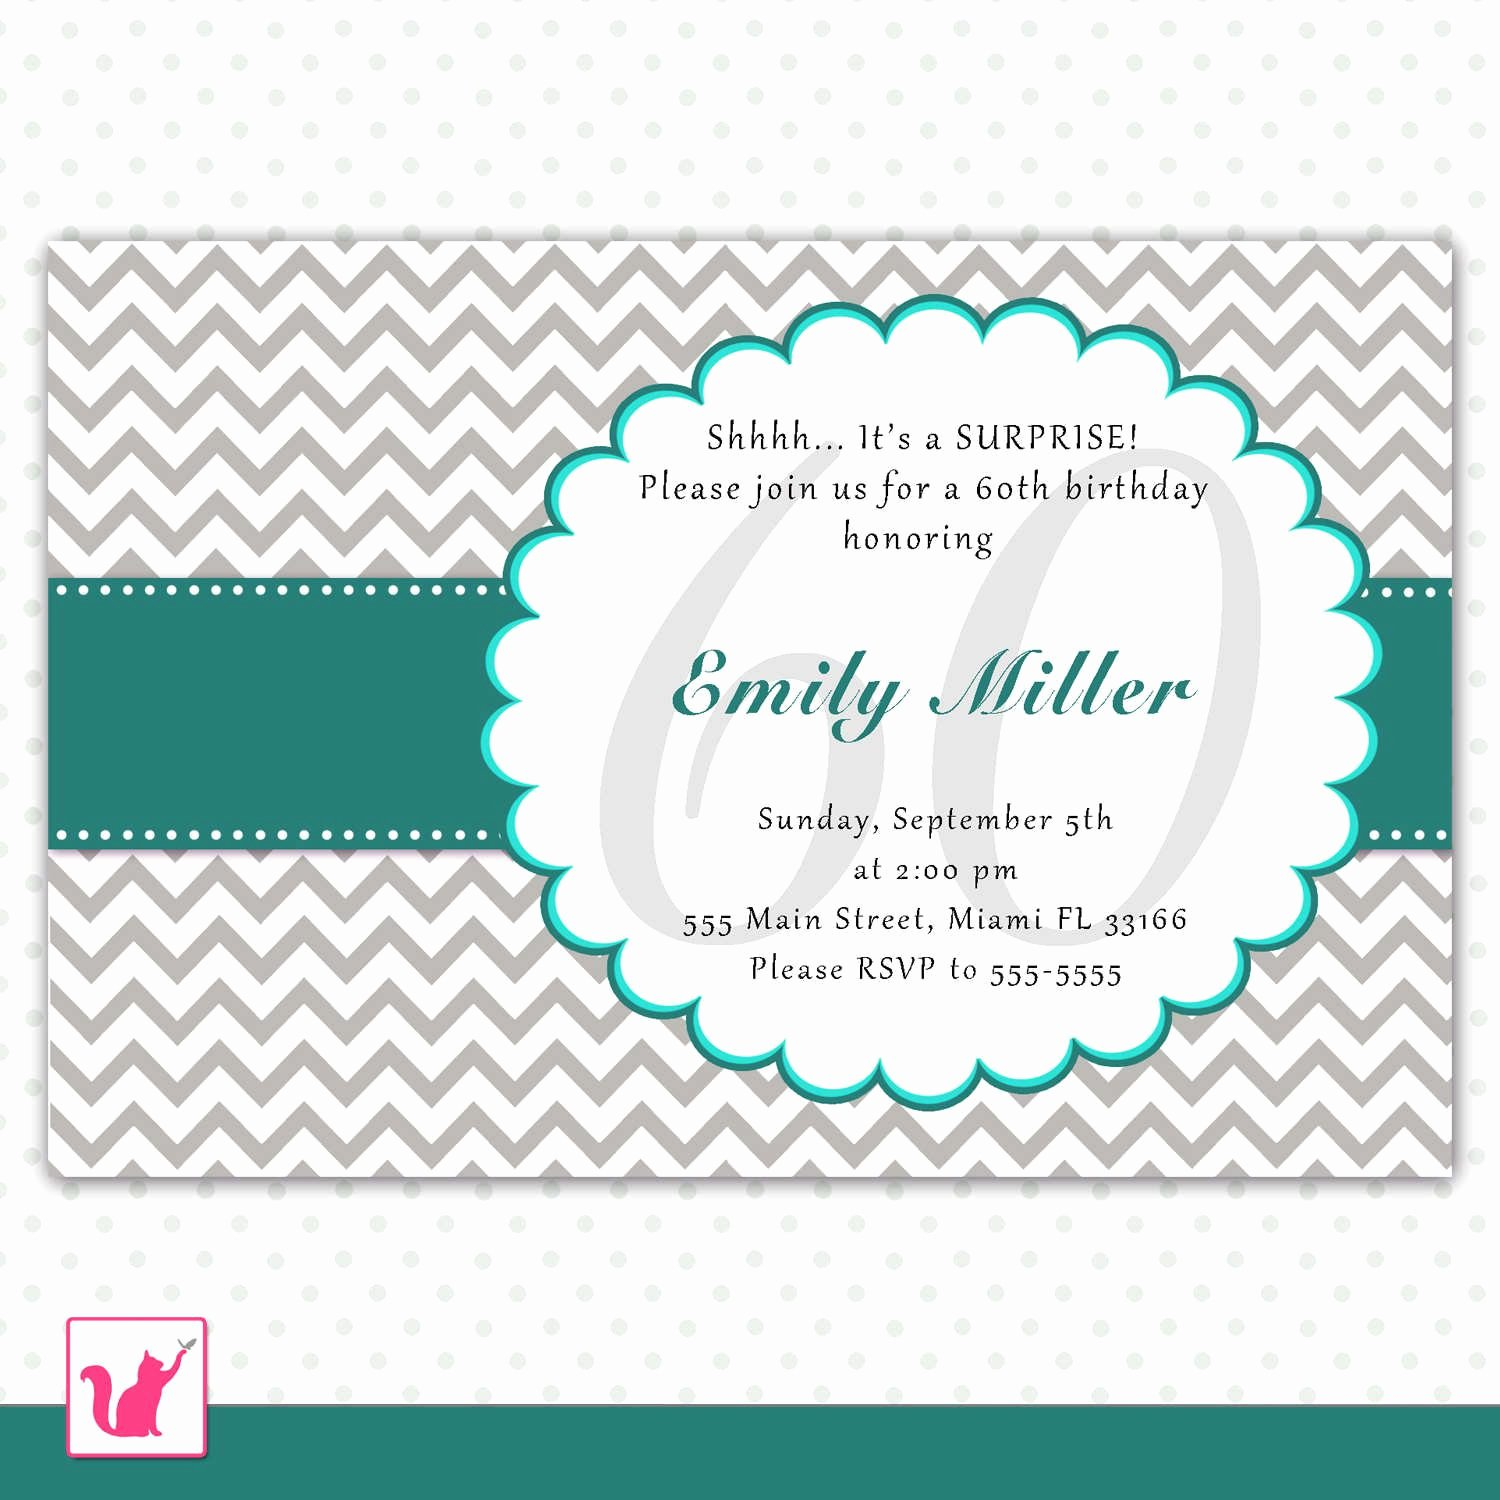 Free Anniversary Invitation Templates Inspirational Anniversary Invitations Anniversary Invitations Ideas